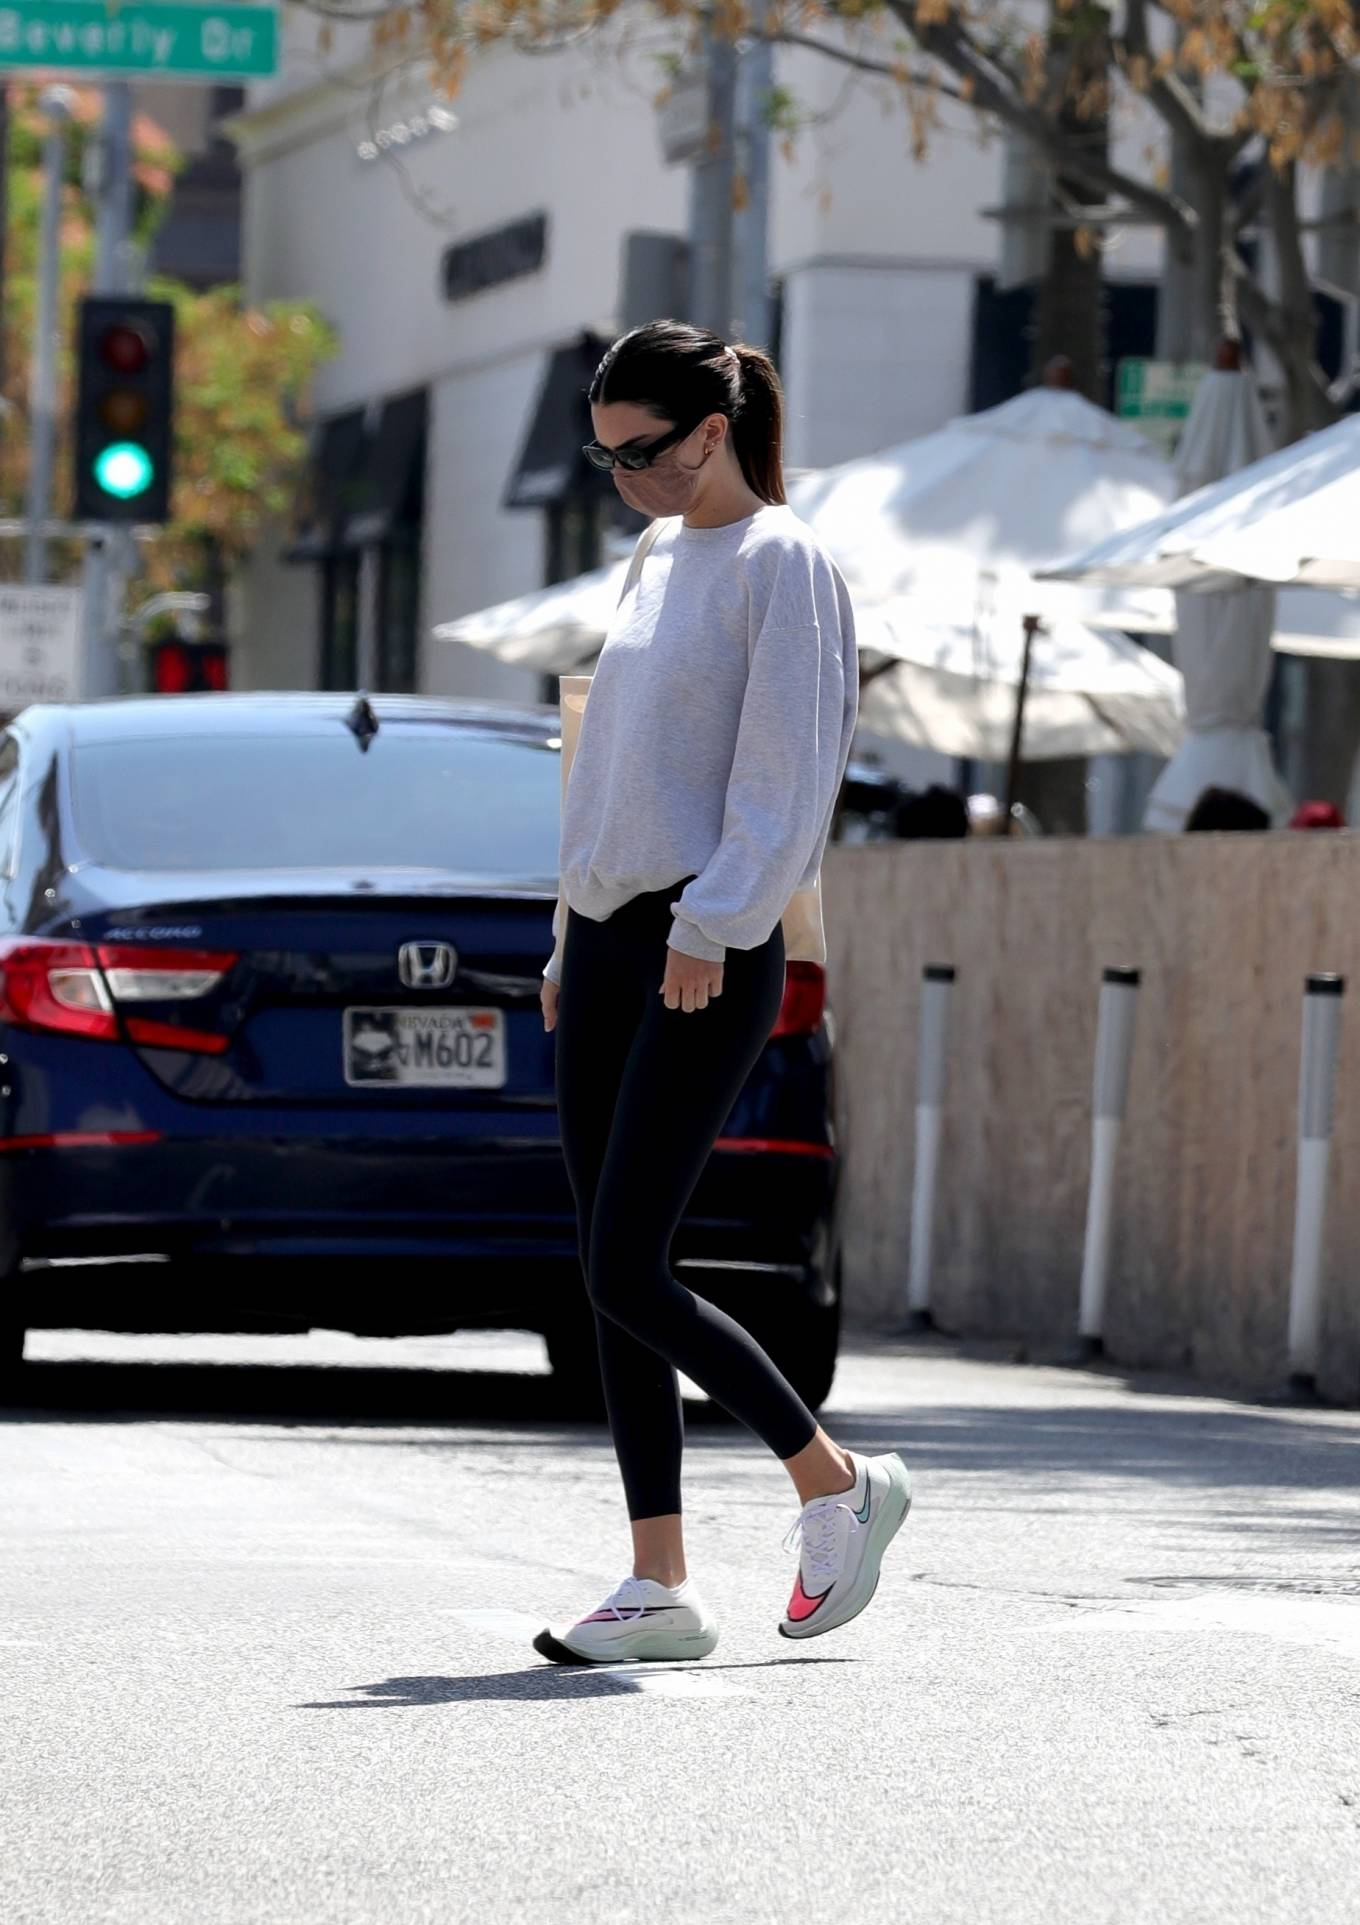 Kendall Jenner donning brand logo white Nike lace-up sneakers